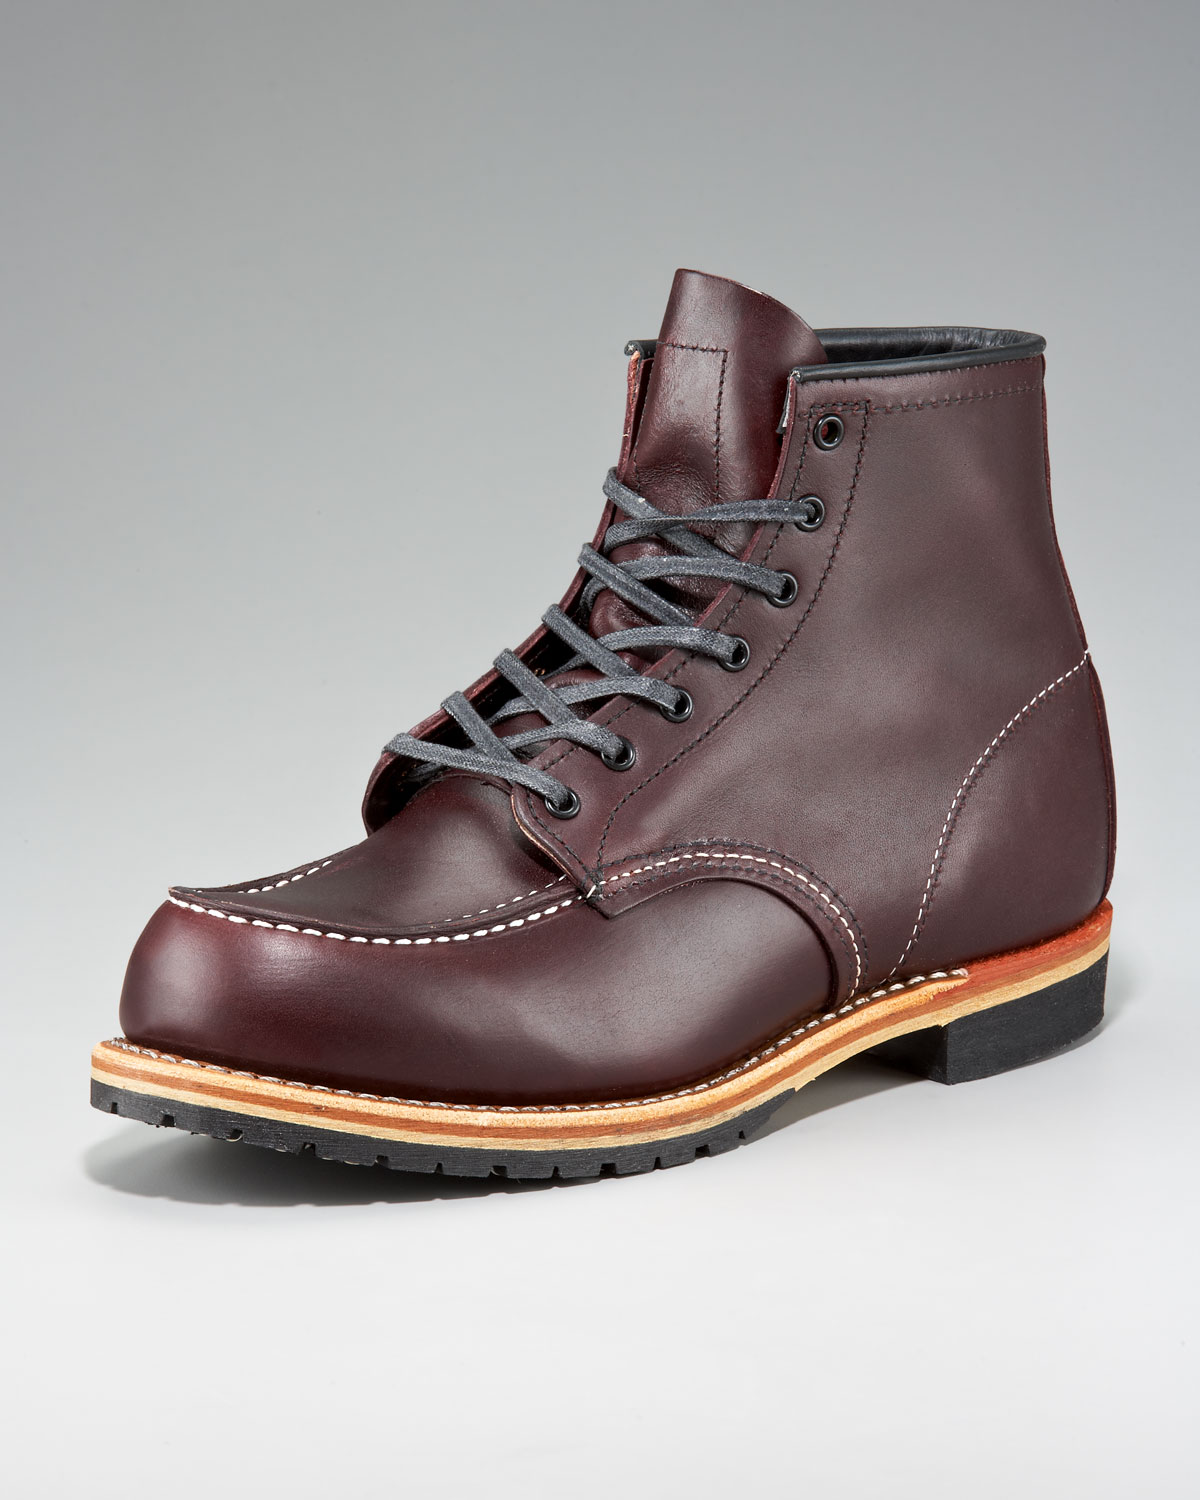 Red Wing Classic Boots NJoGt5oO